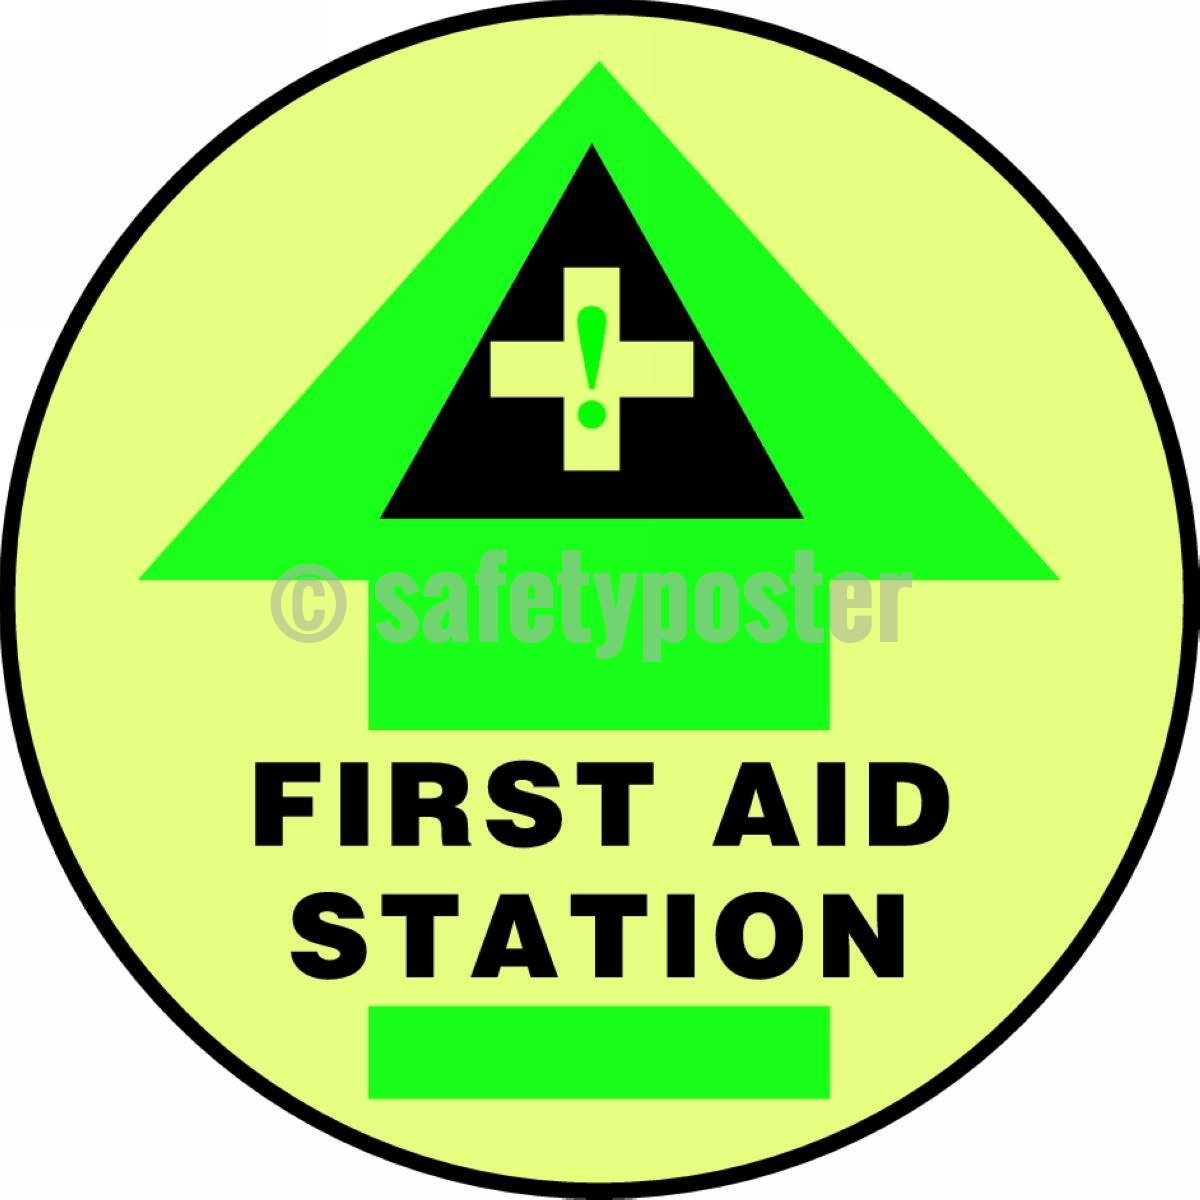 First Aid Station (Arrow) - Glow Floor Sign Adhesive Signs